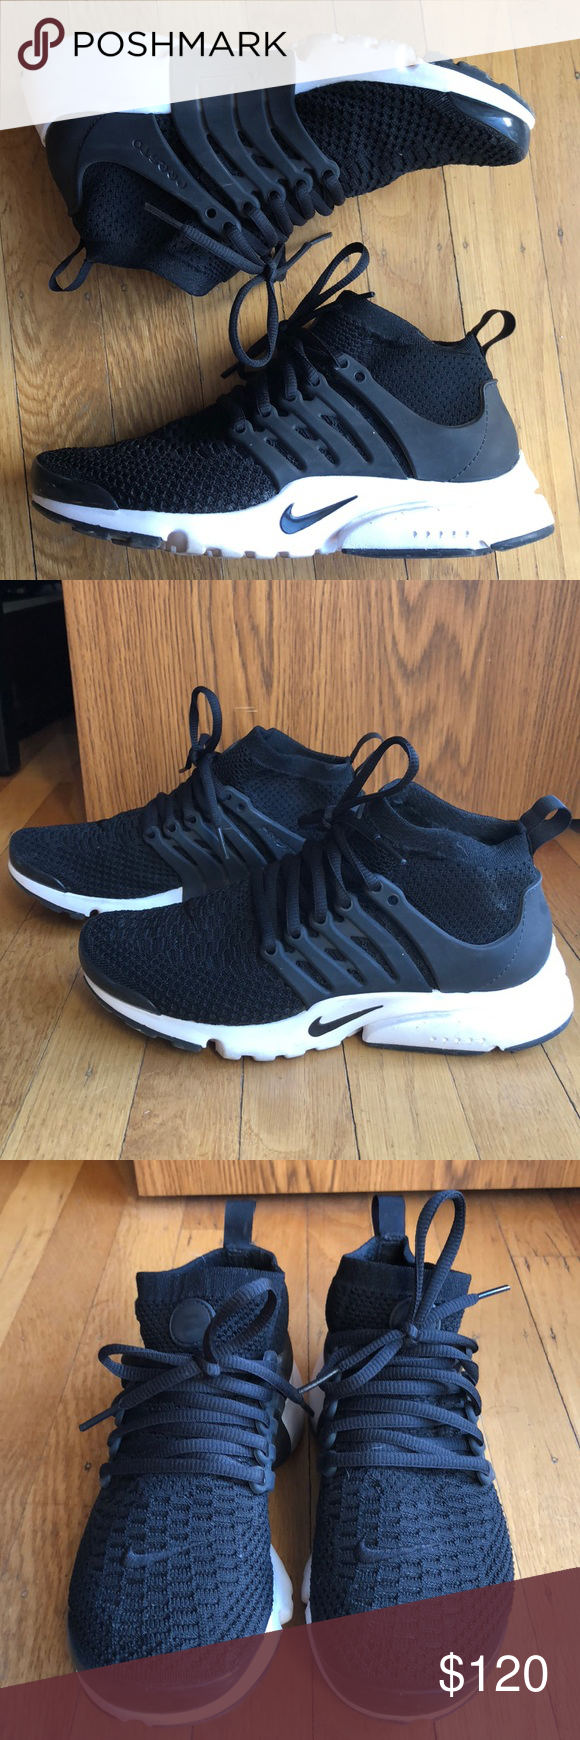 Nike Air Presto Ultra Flyknit An updated version of the